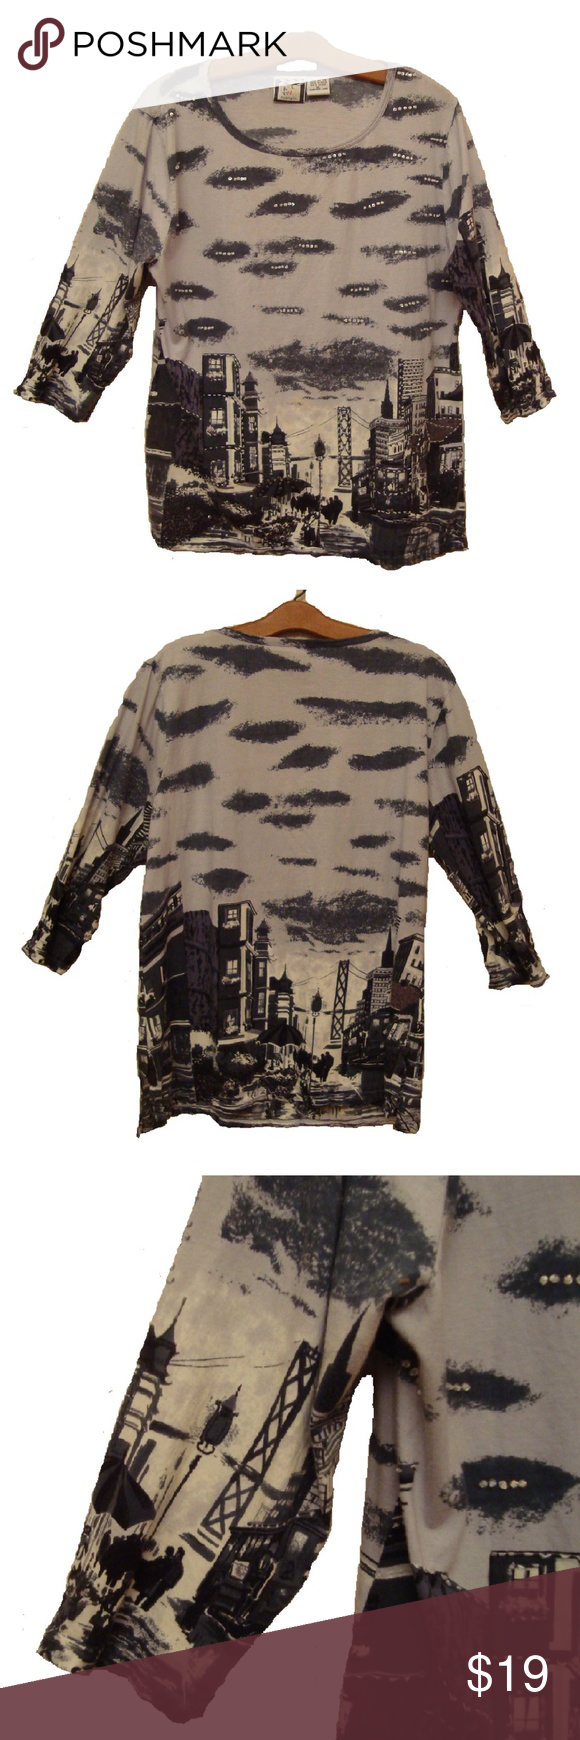 Take Two Clothing Co. City Scene Top, XL PreOwned Good